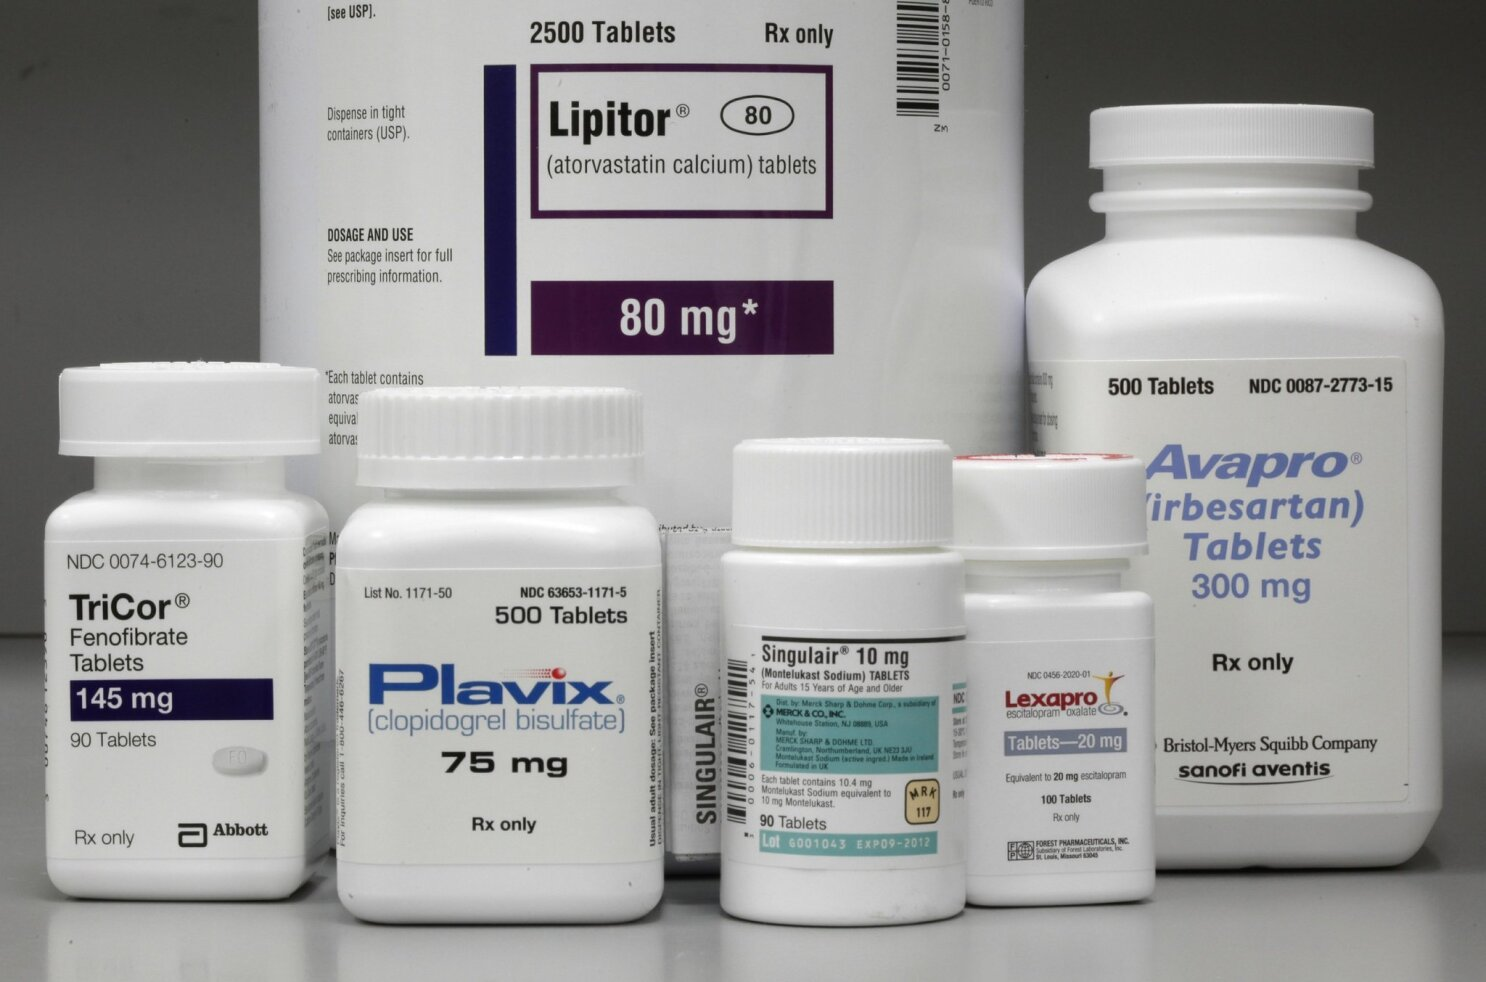 Readers React: Drug companies should not be allowed to advertise